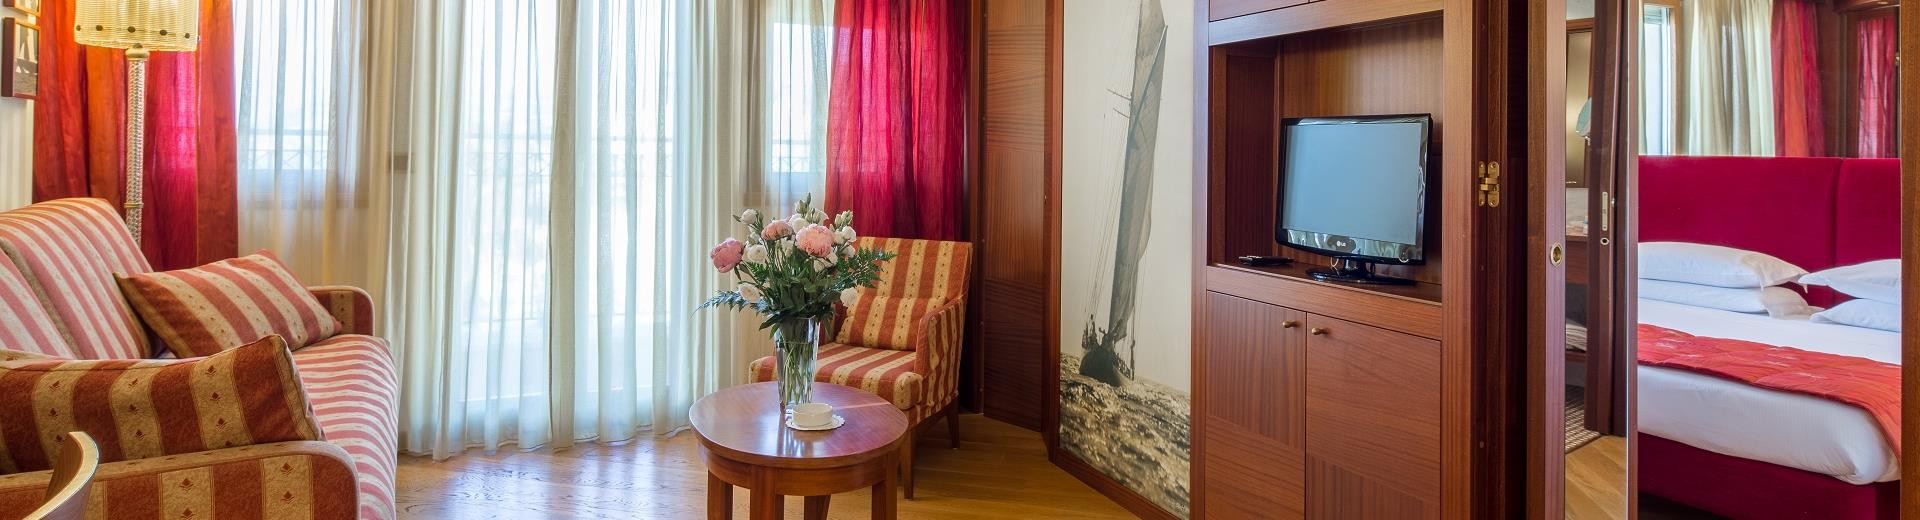 The comfortable and spacious rooms of the Best Western Hotel Nazionale San Remo